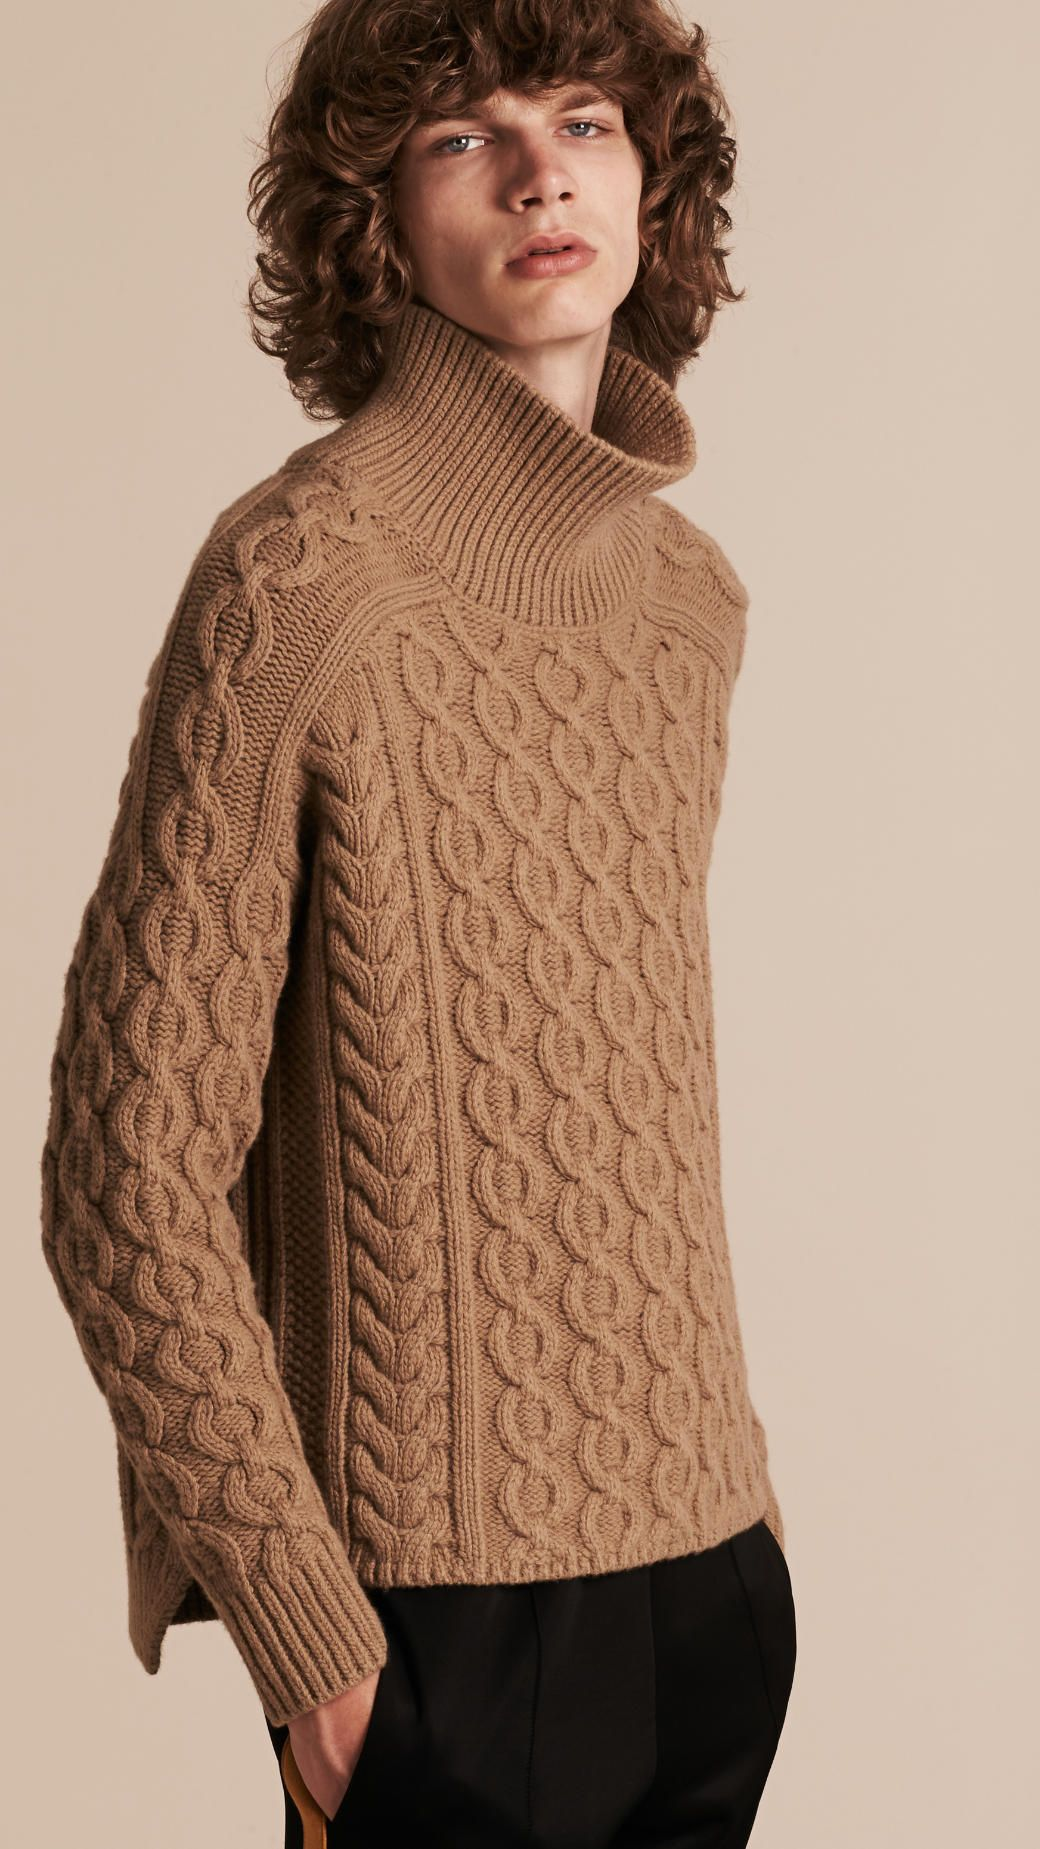 a526a92ddb69 Wool Cashmere Cable Knit Jumper